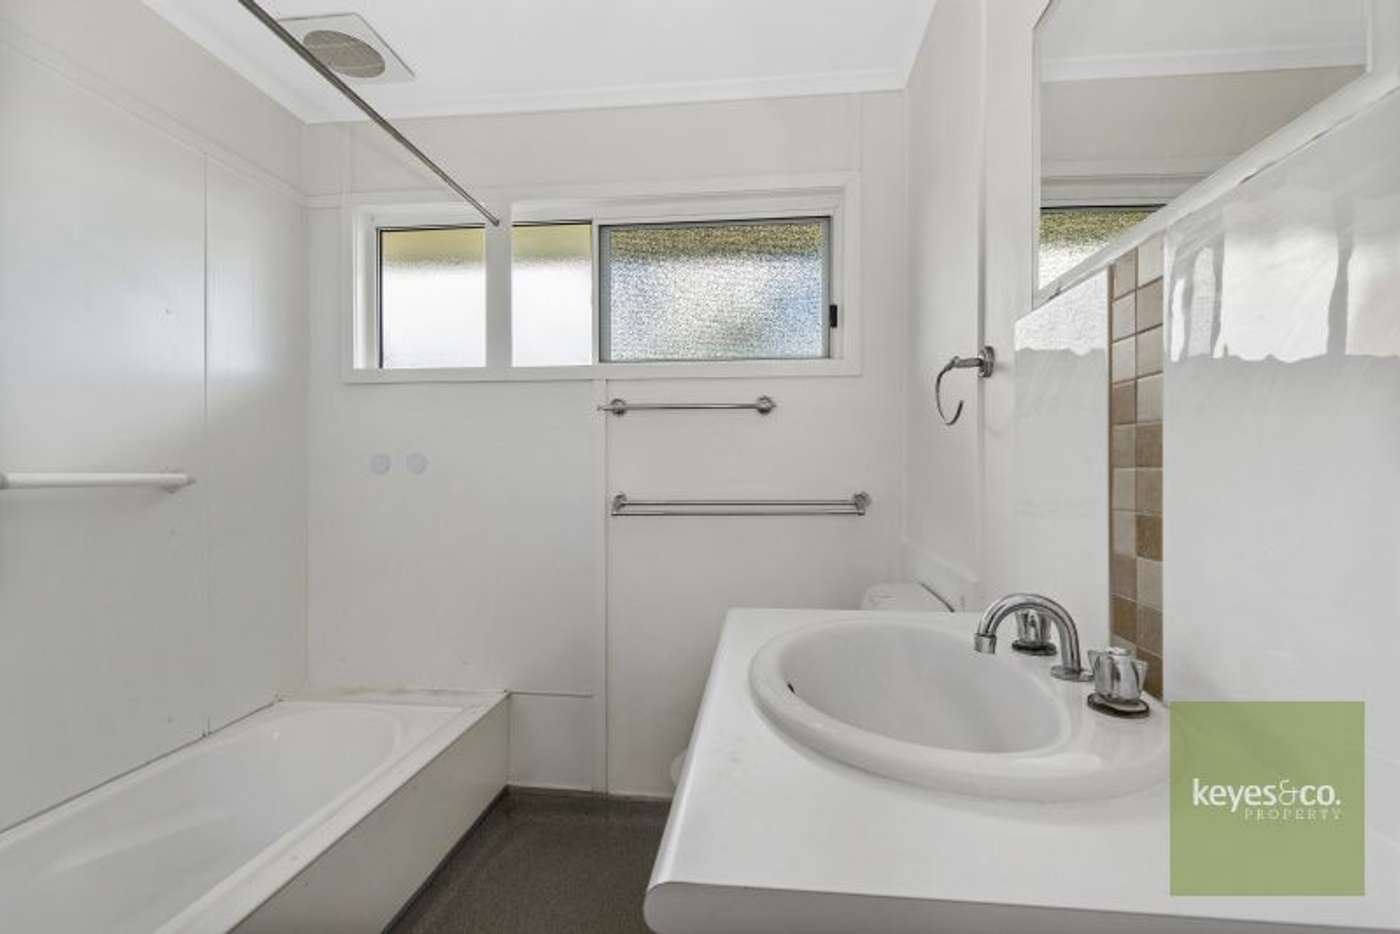 Fifth view of Homely house listing, 23a Lonerganne Street, Garbutt QLD 4814